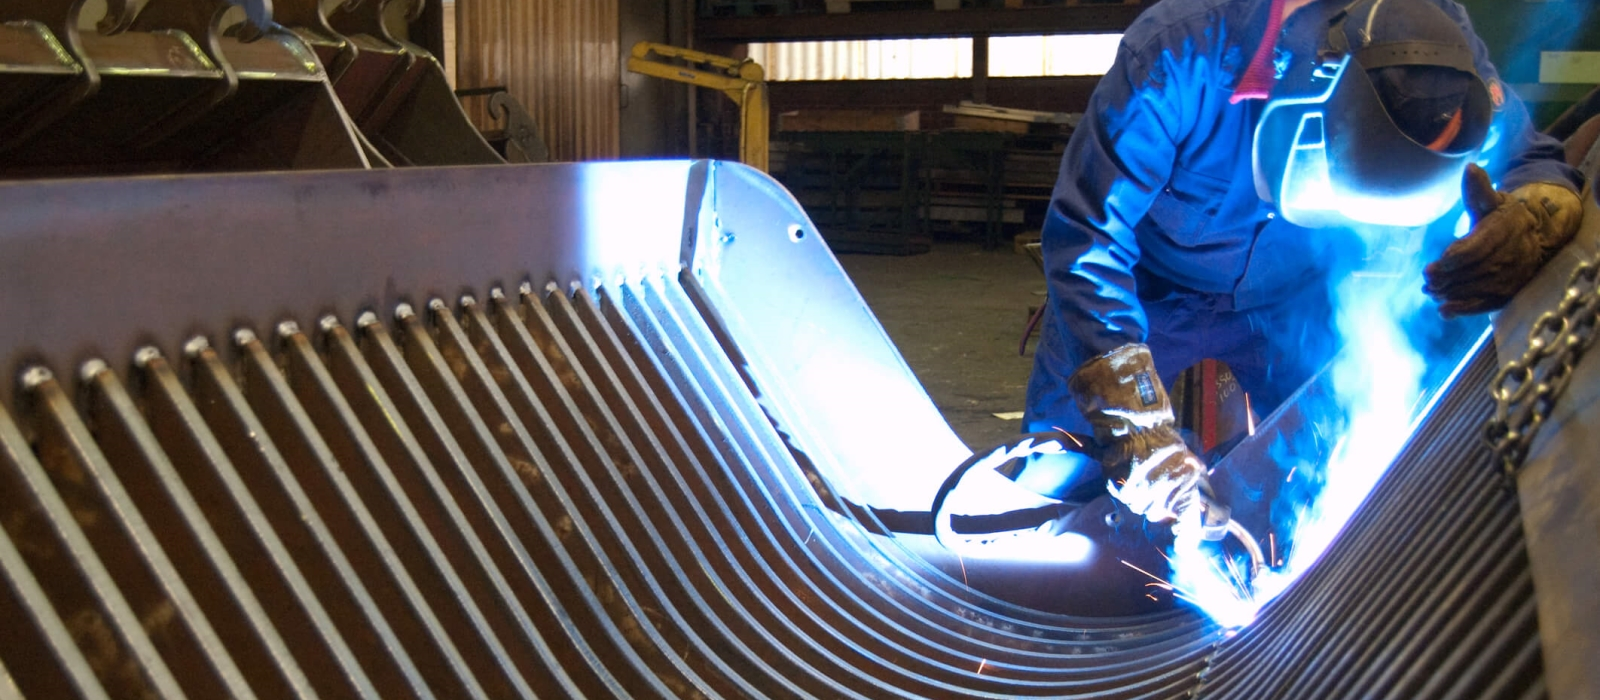 Professionally Welding Metal Together